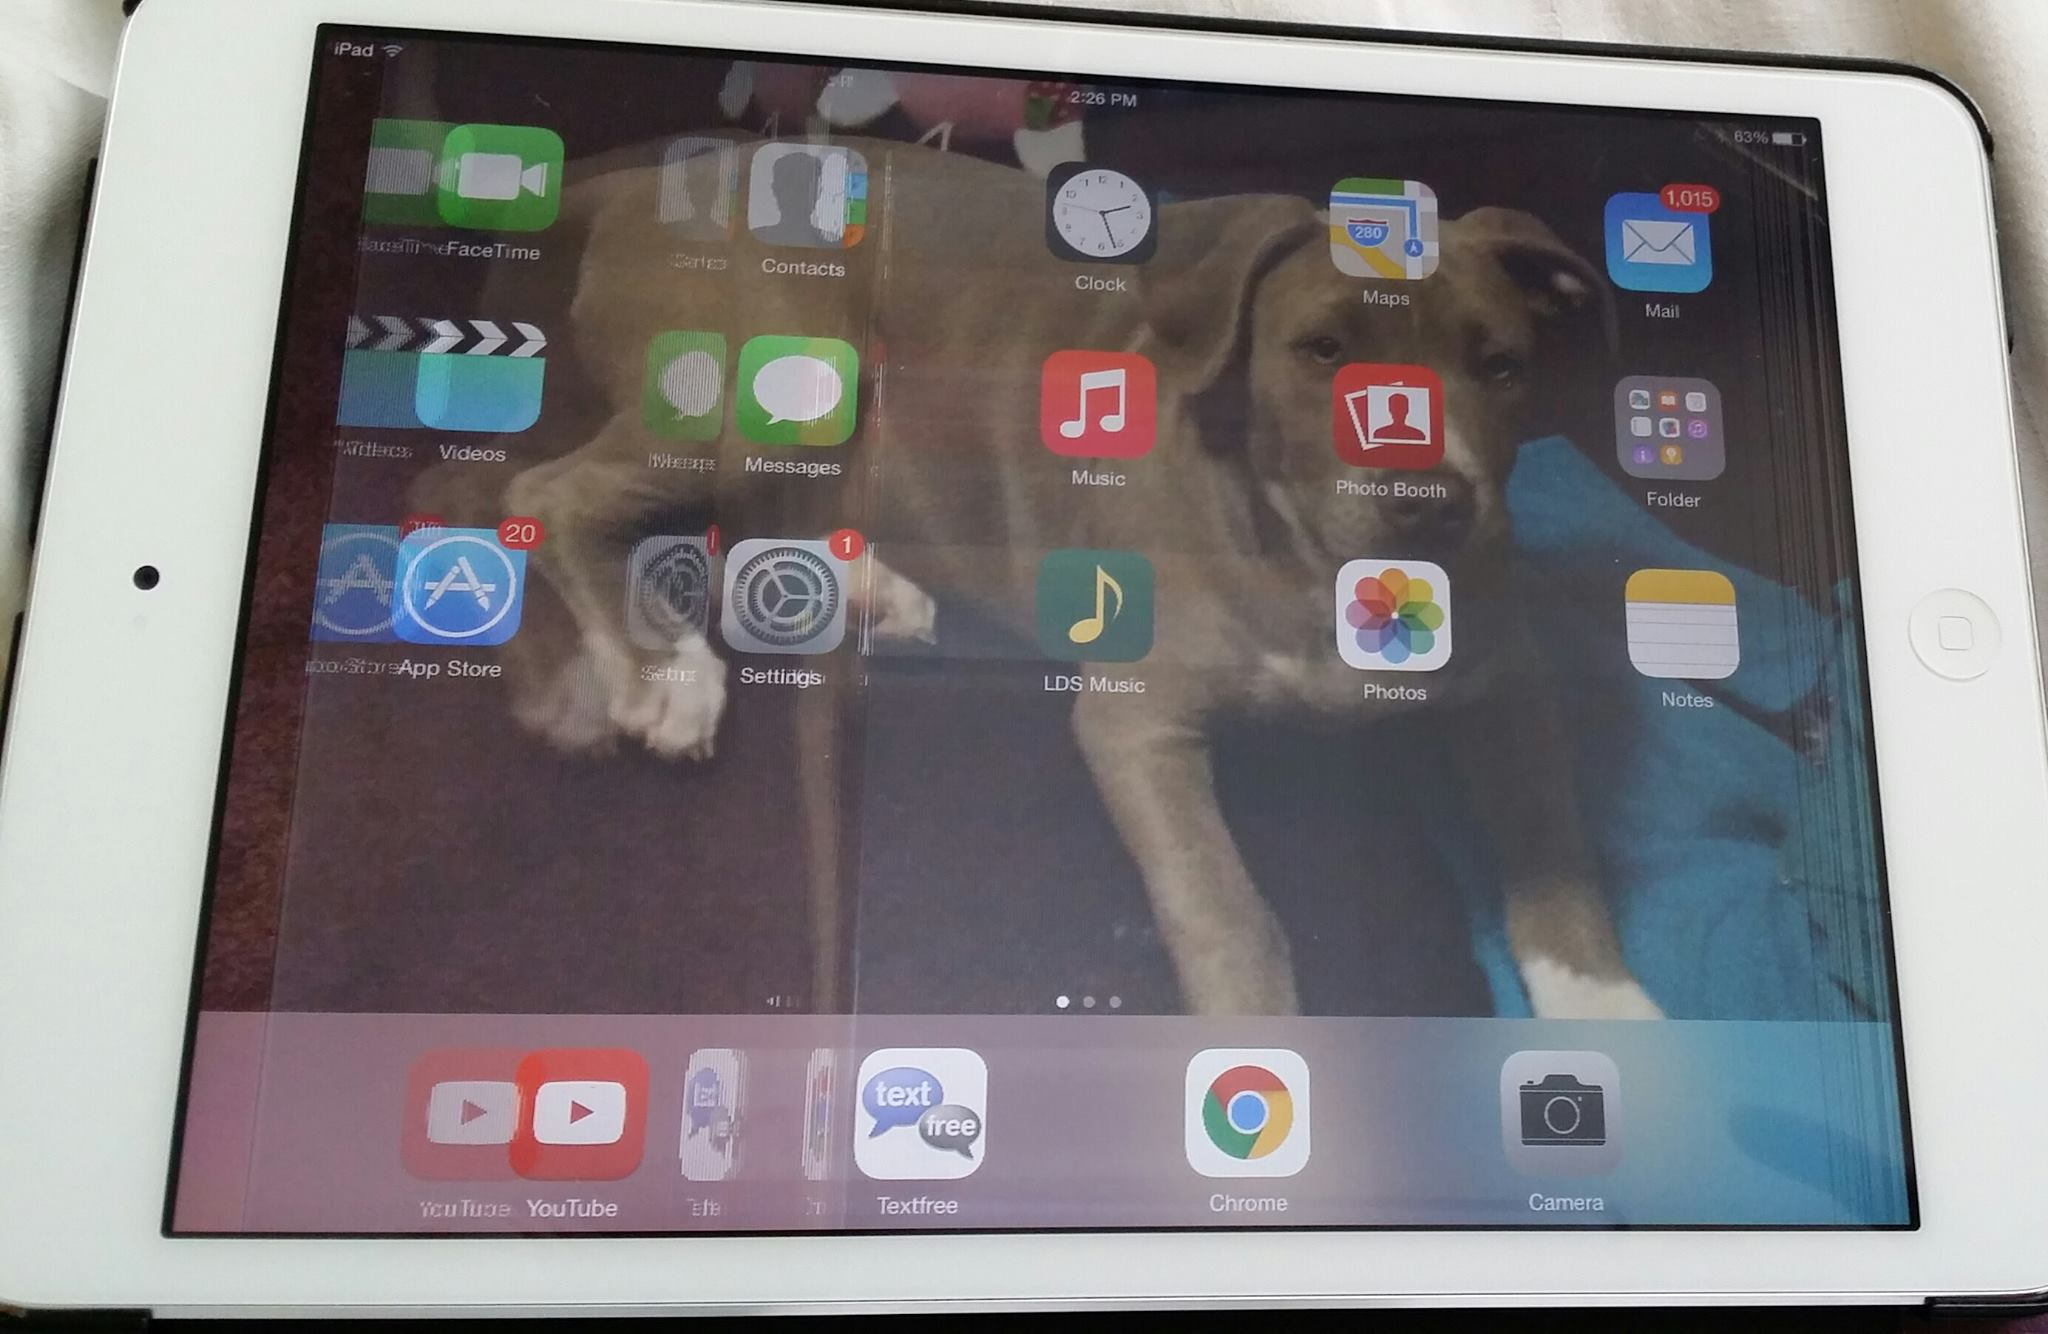 How can i fix my ipad? screen is fuzzy with big gray lines